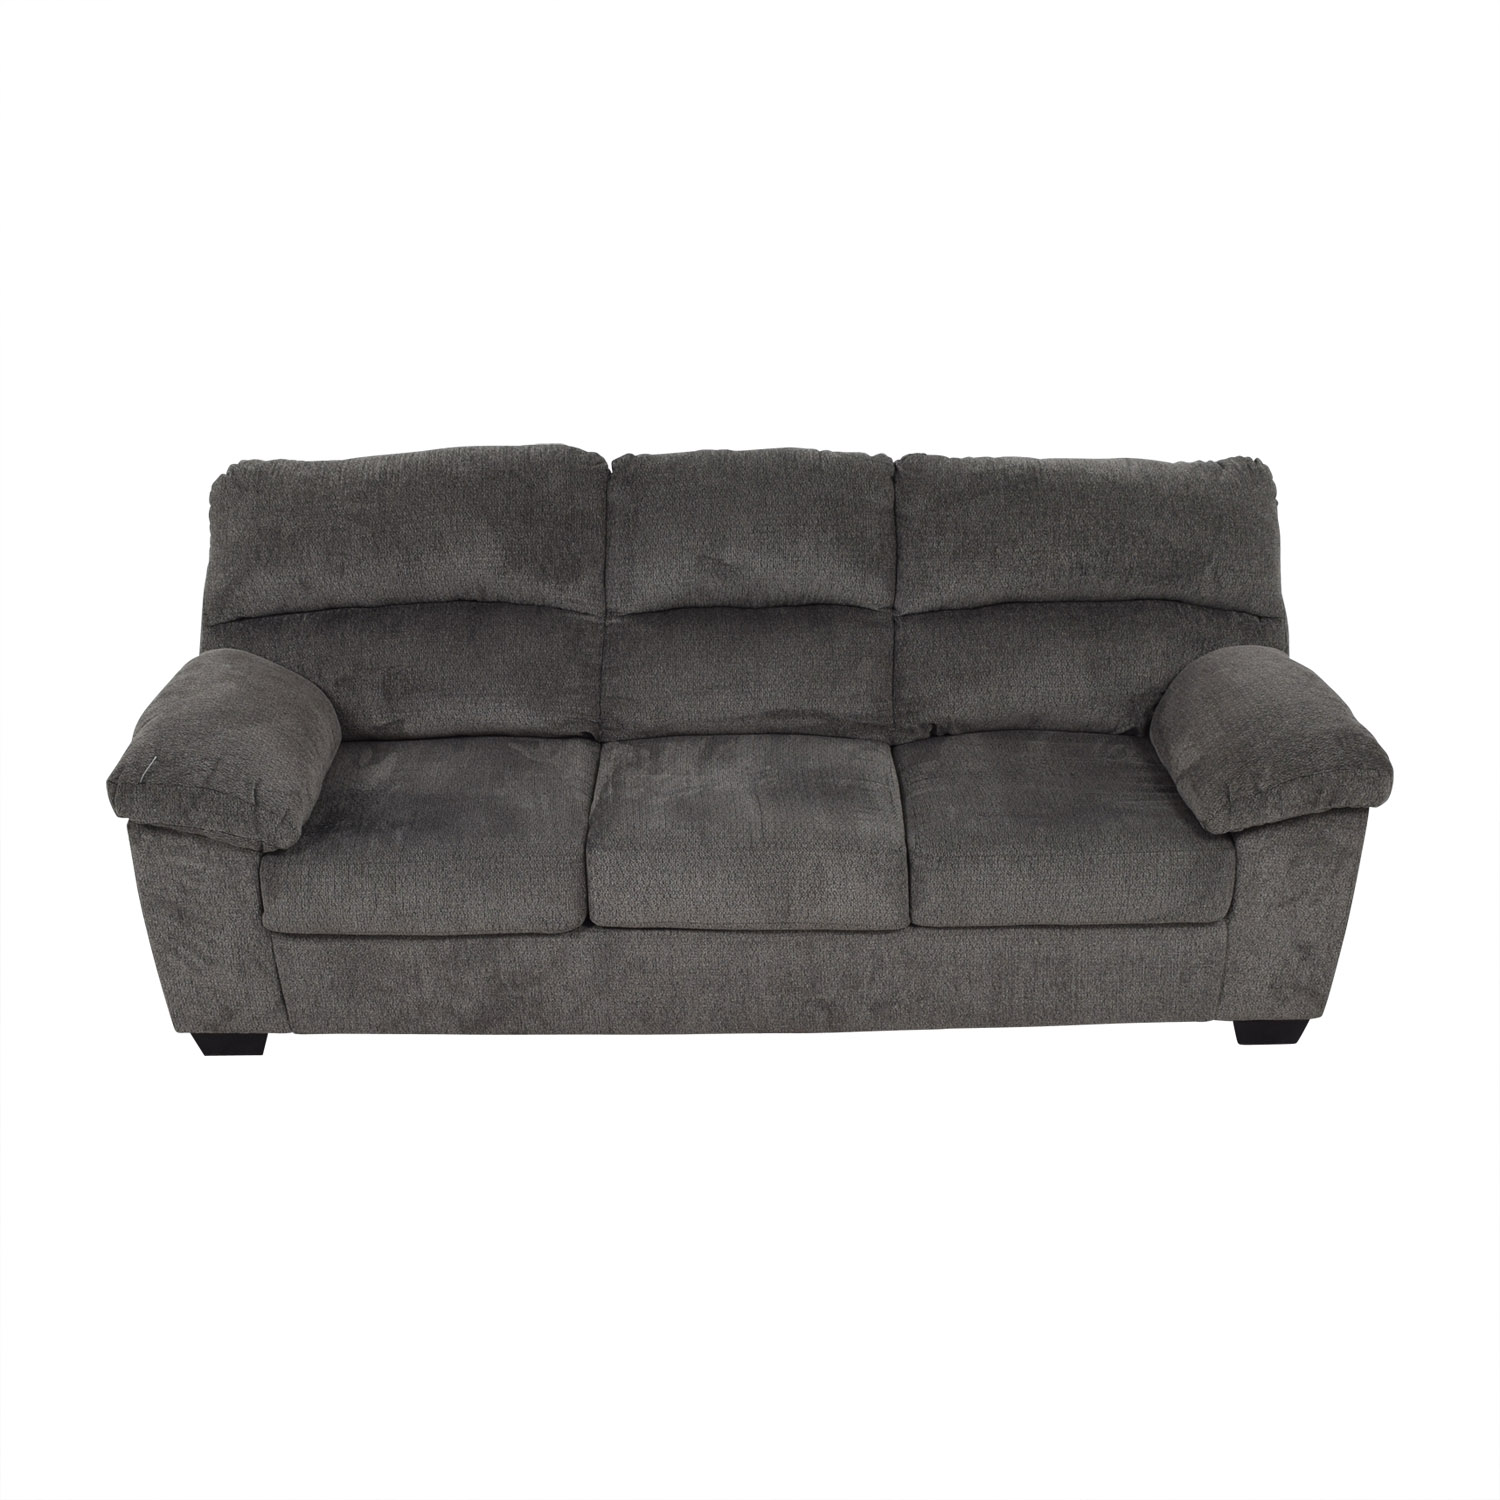 Ashley Furniture Ashley Furniture Grey Three Seat Sofa price